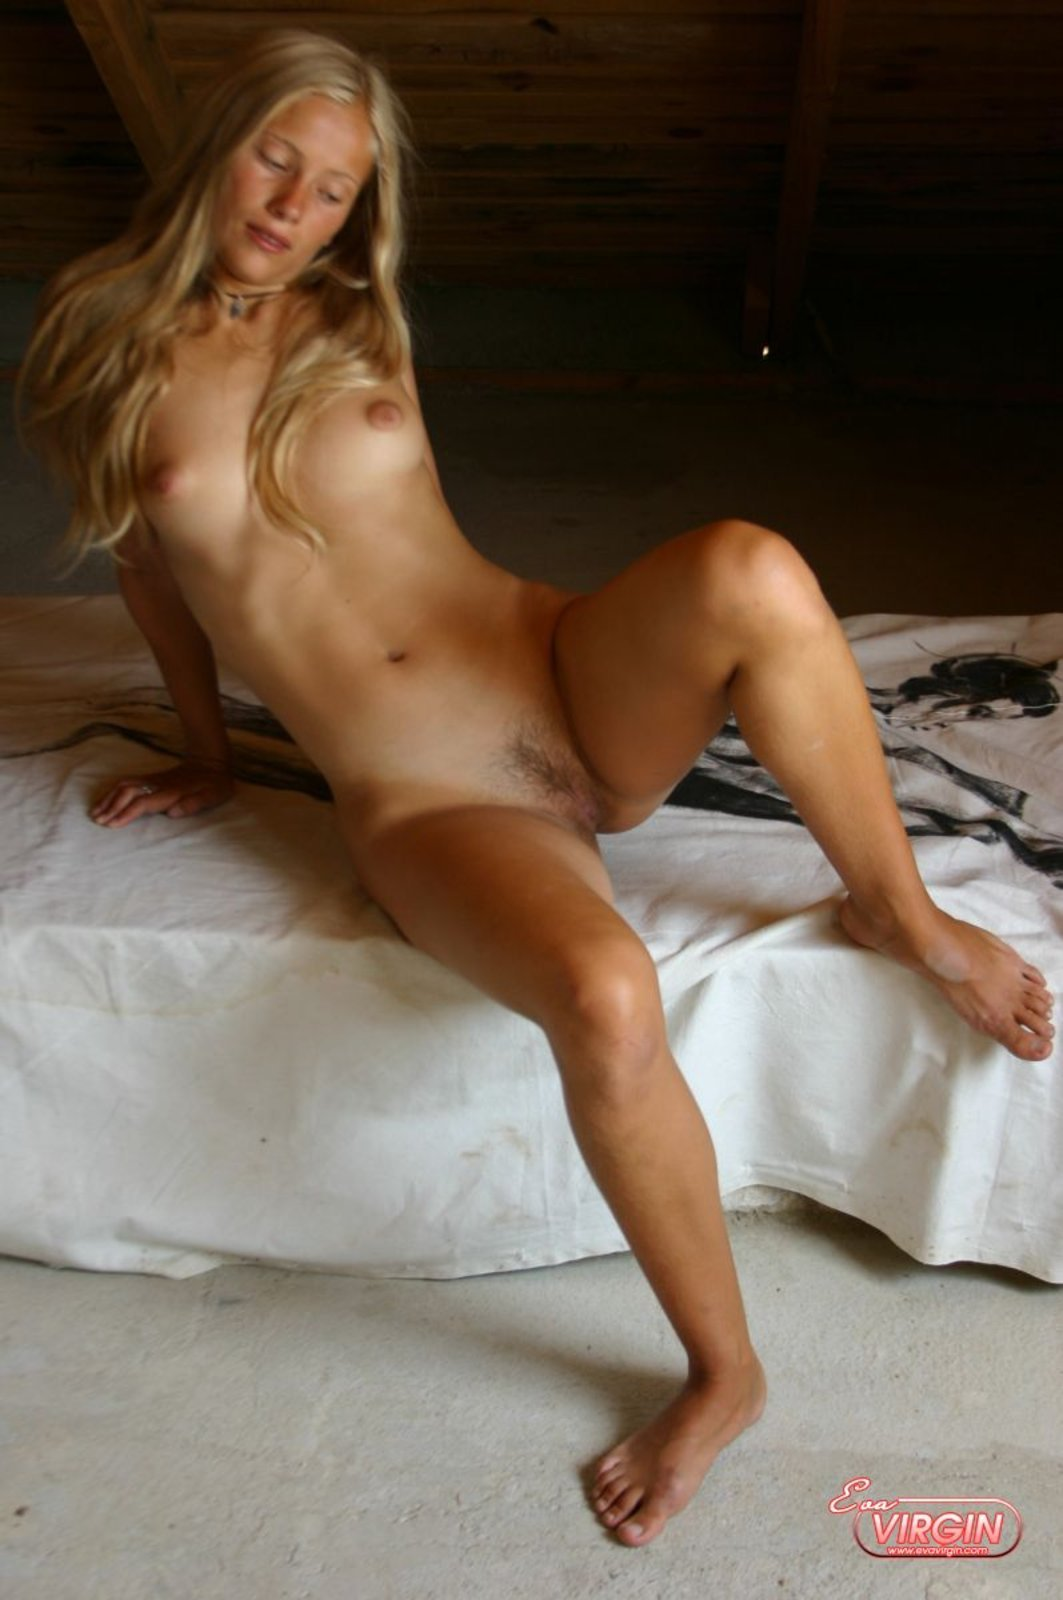 South west totnes swingers Hot matured wife witj young boy